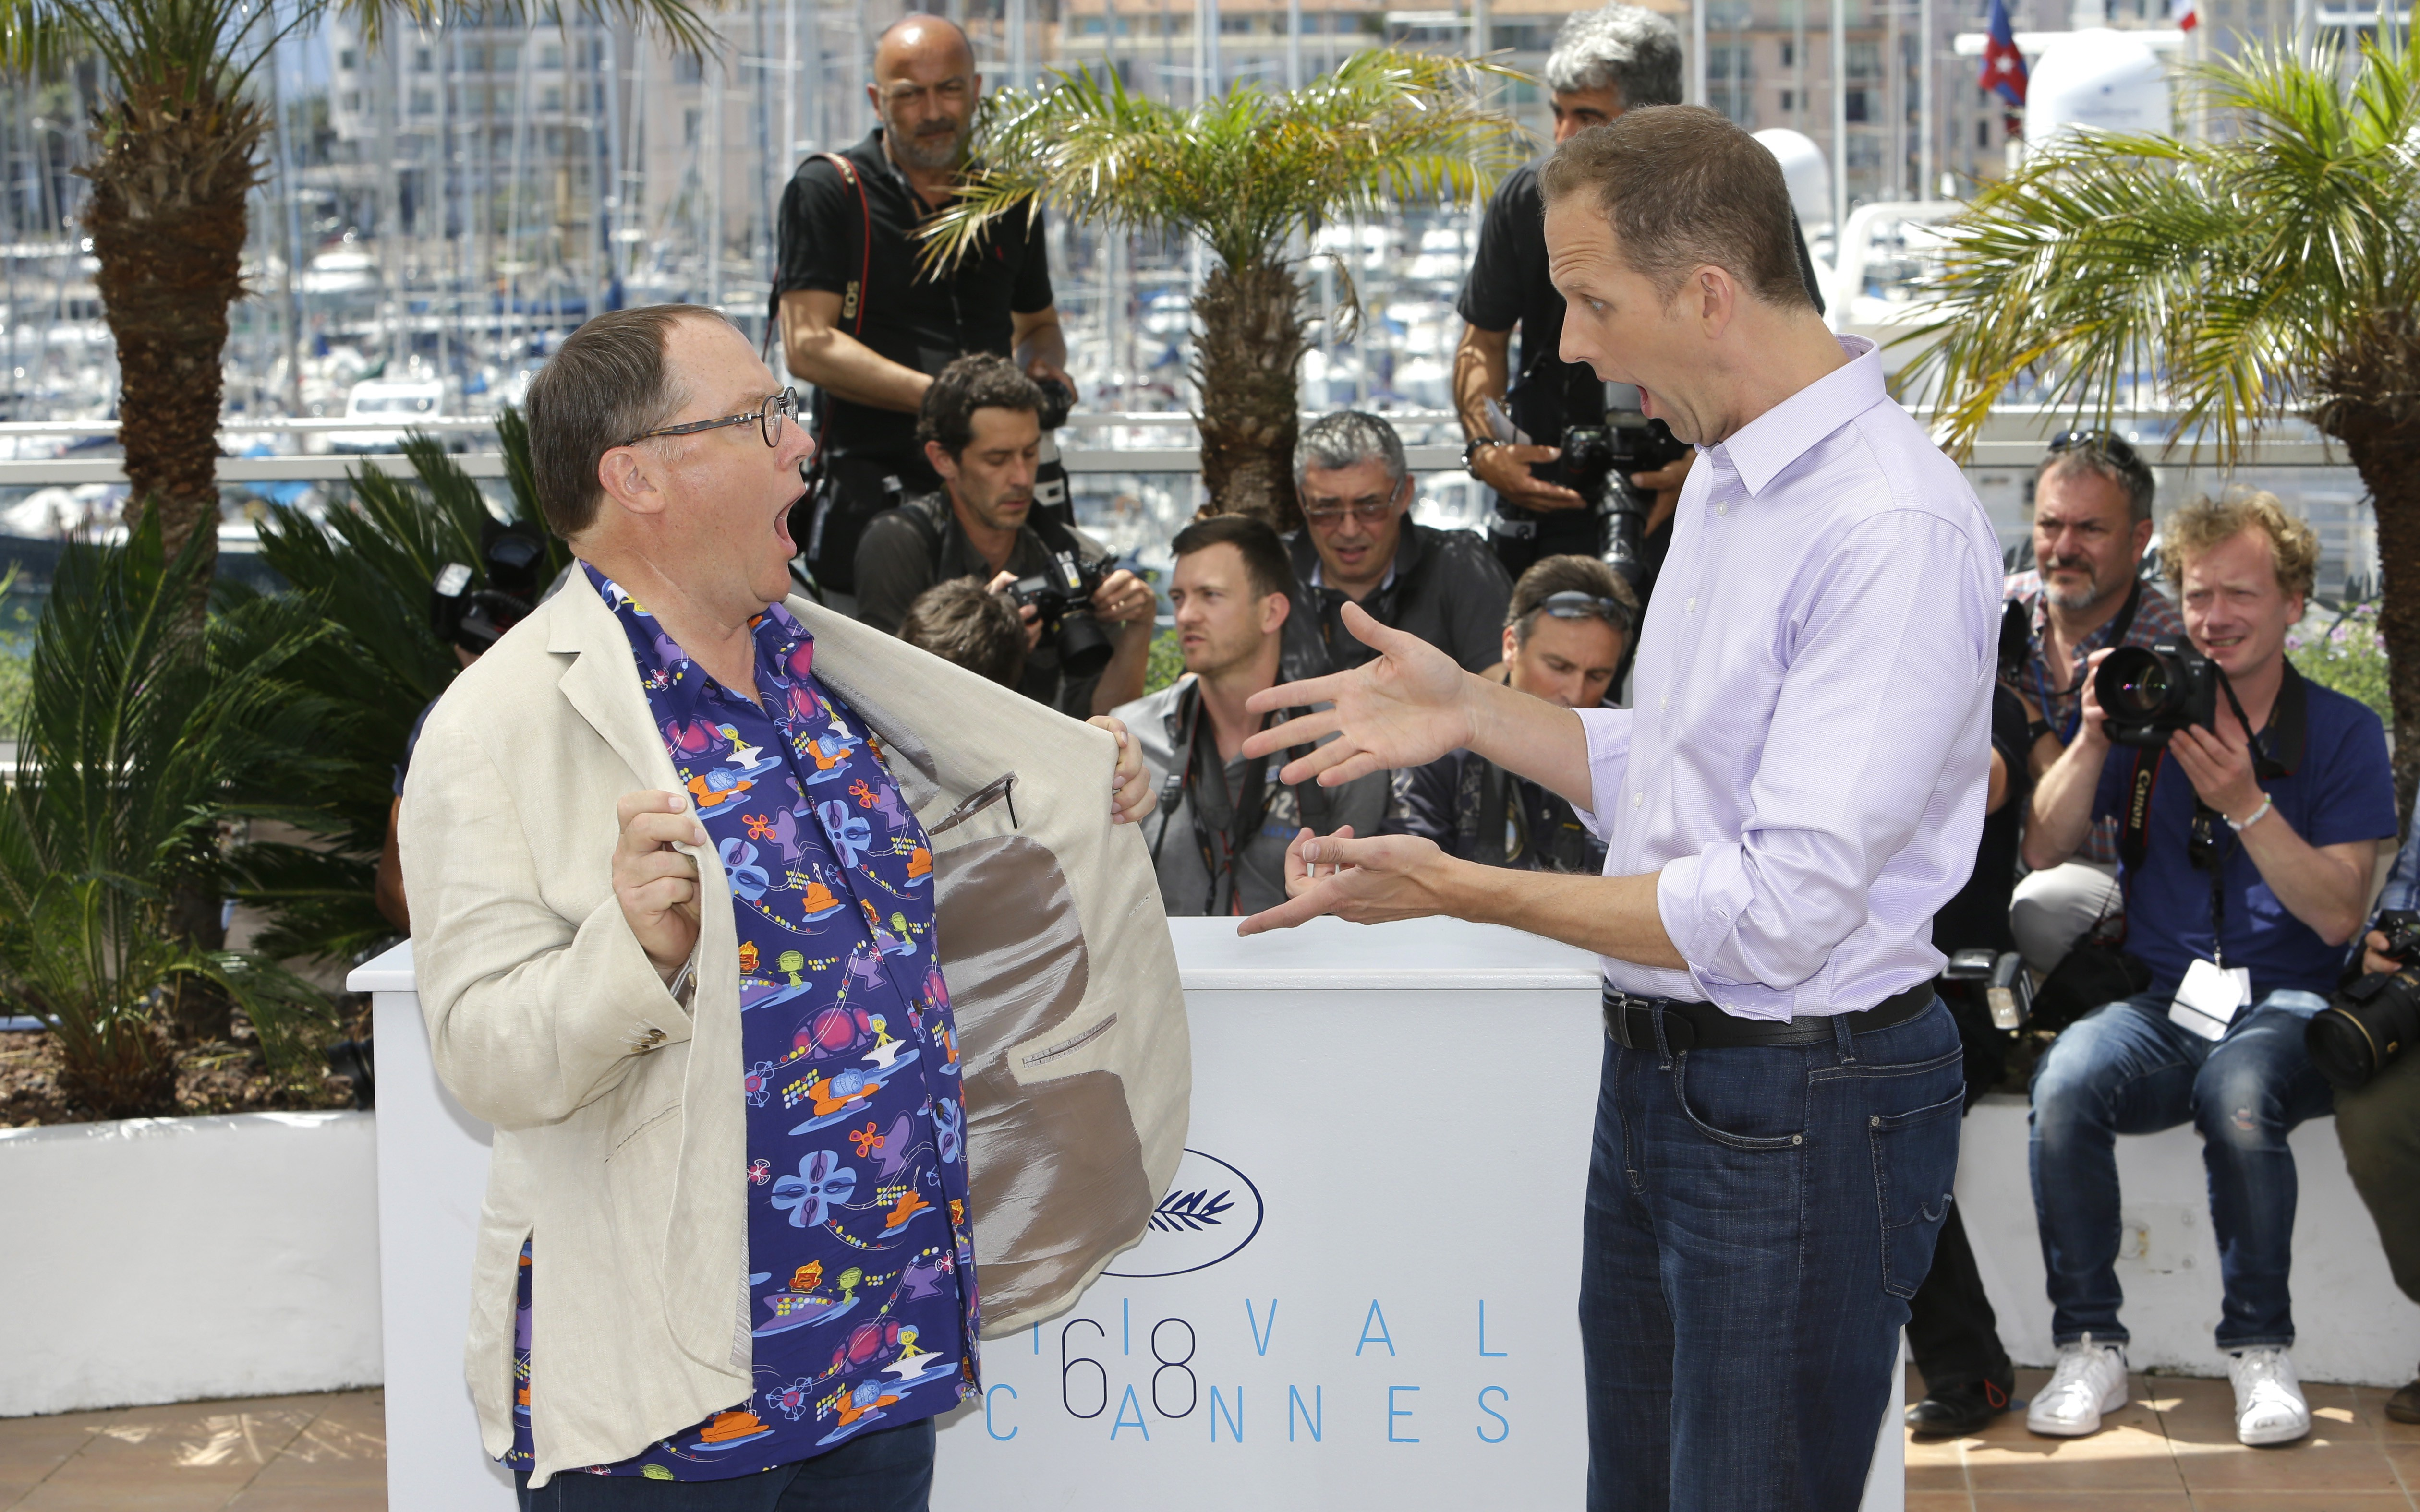 Chief creative officer of Pixar John Lasseter and director Pete Docter pose during a photo call for the film Inside Out, at the 68th international film festival, Cannes, southern France, Monday, May 18, 2015. (AP Photo/Lionel Cironneau)